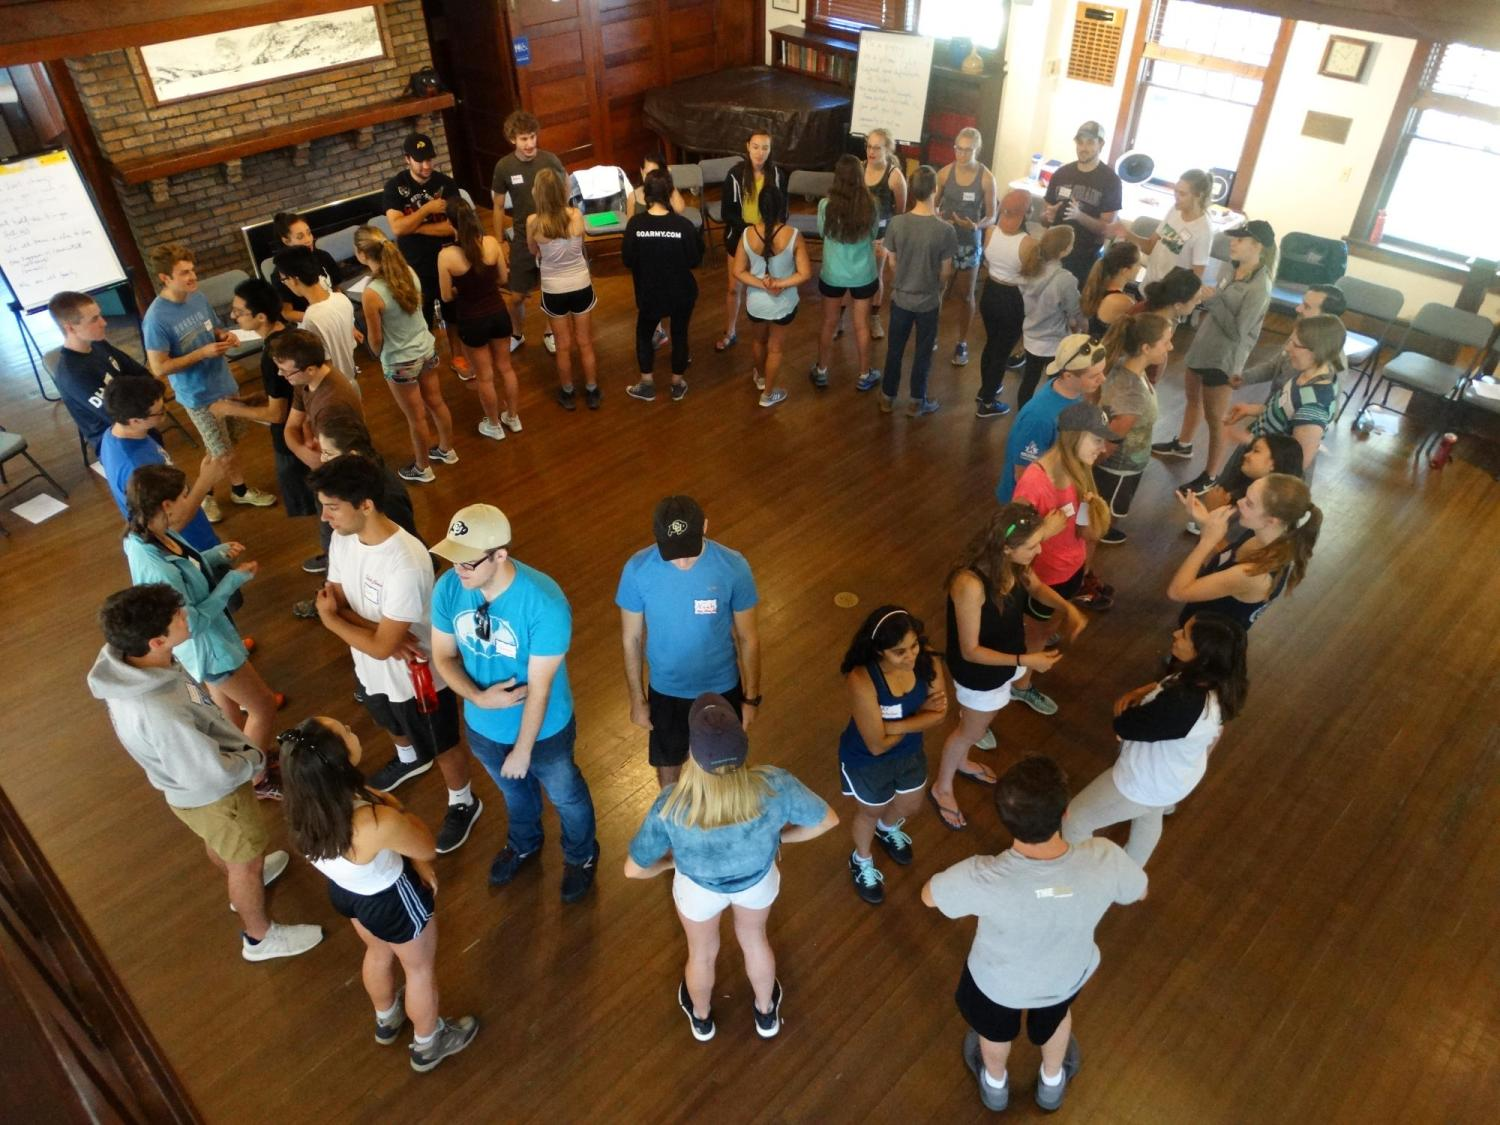 students welcome activity at retreat